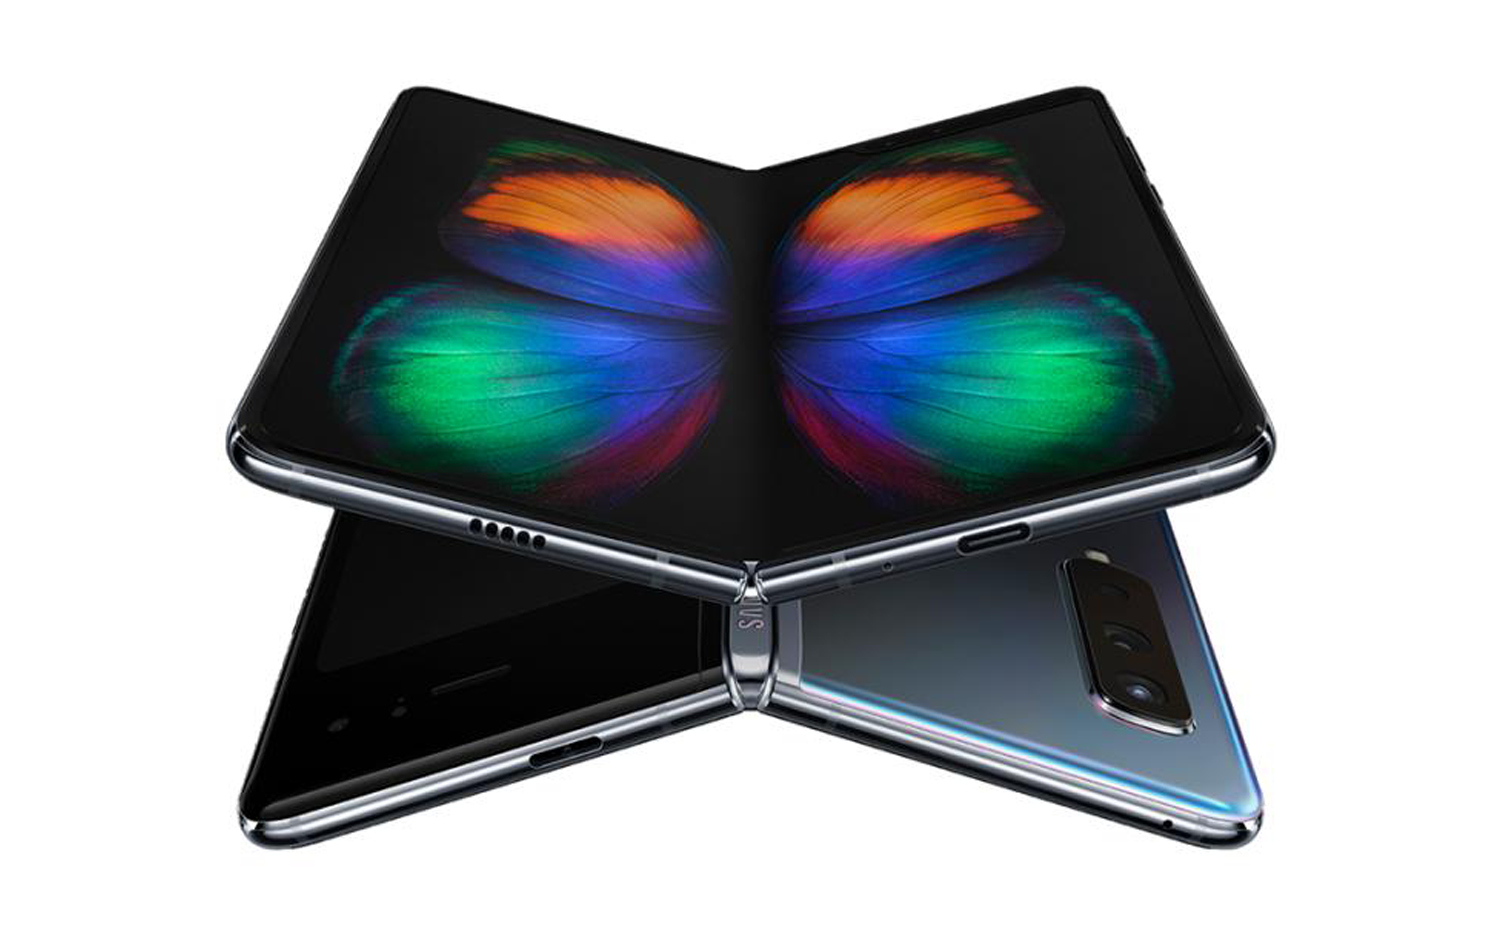 Westlake Legal Group Samsung-Galaxy-Fold-Butterfly Samsung's $2,000 foldable phone is already breaking, reviewers say Nicolas Vega New York Post fox-news/tech/companies/samsung fnc/tech fnc article 7d891fe8-2c2d-5101-93bc-984edf6d8858